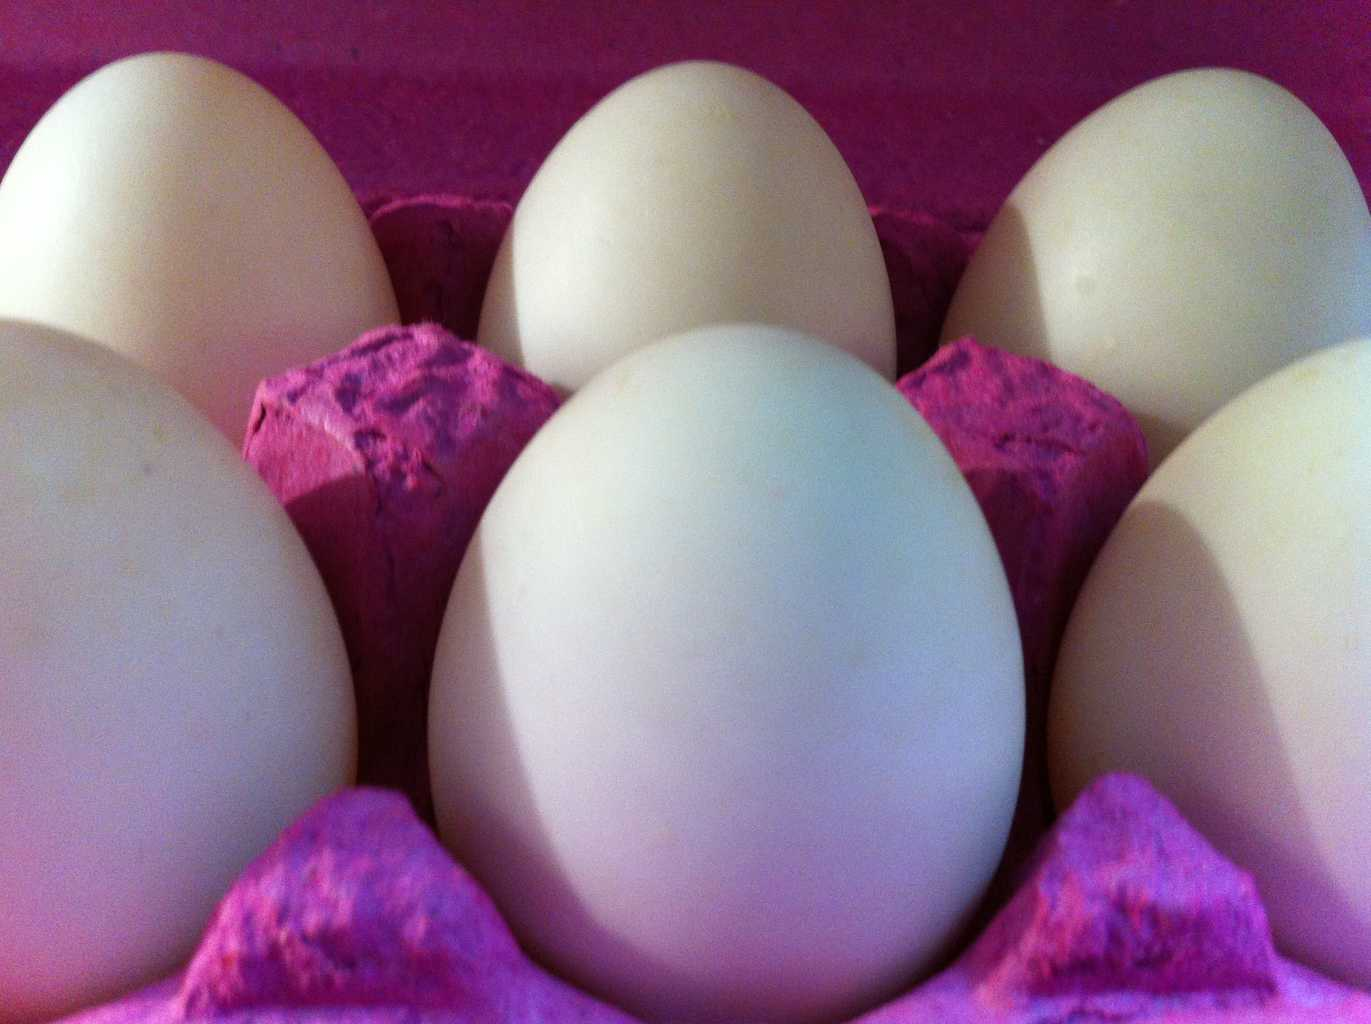 Duck eggs - Welsh Harlequin duck eggs